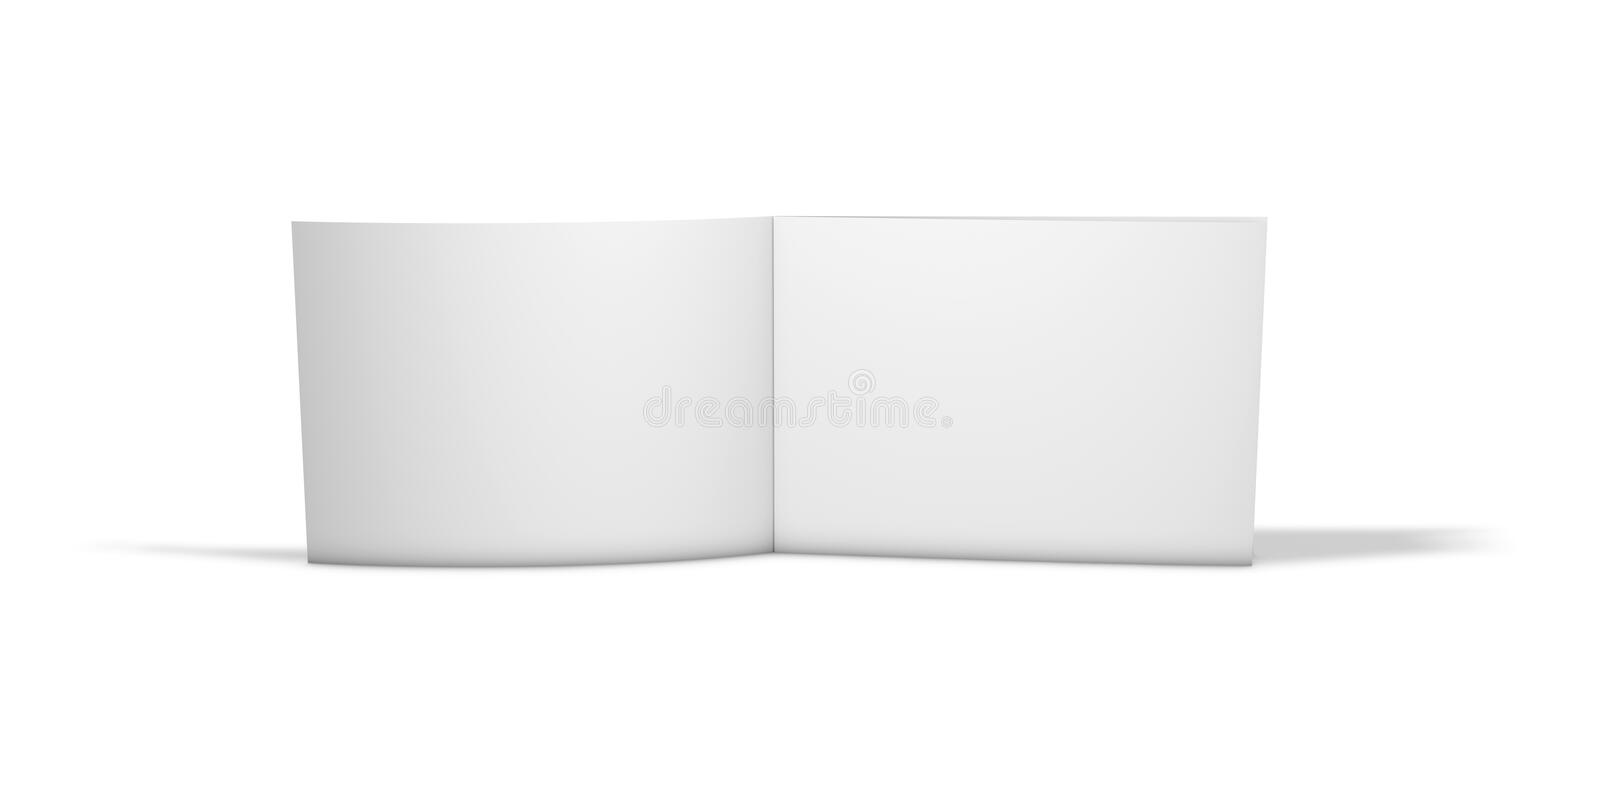 Open horizontal long two pages brochure standing on floor isolated on white background. royalty free illustration